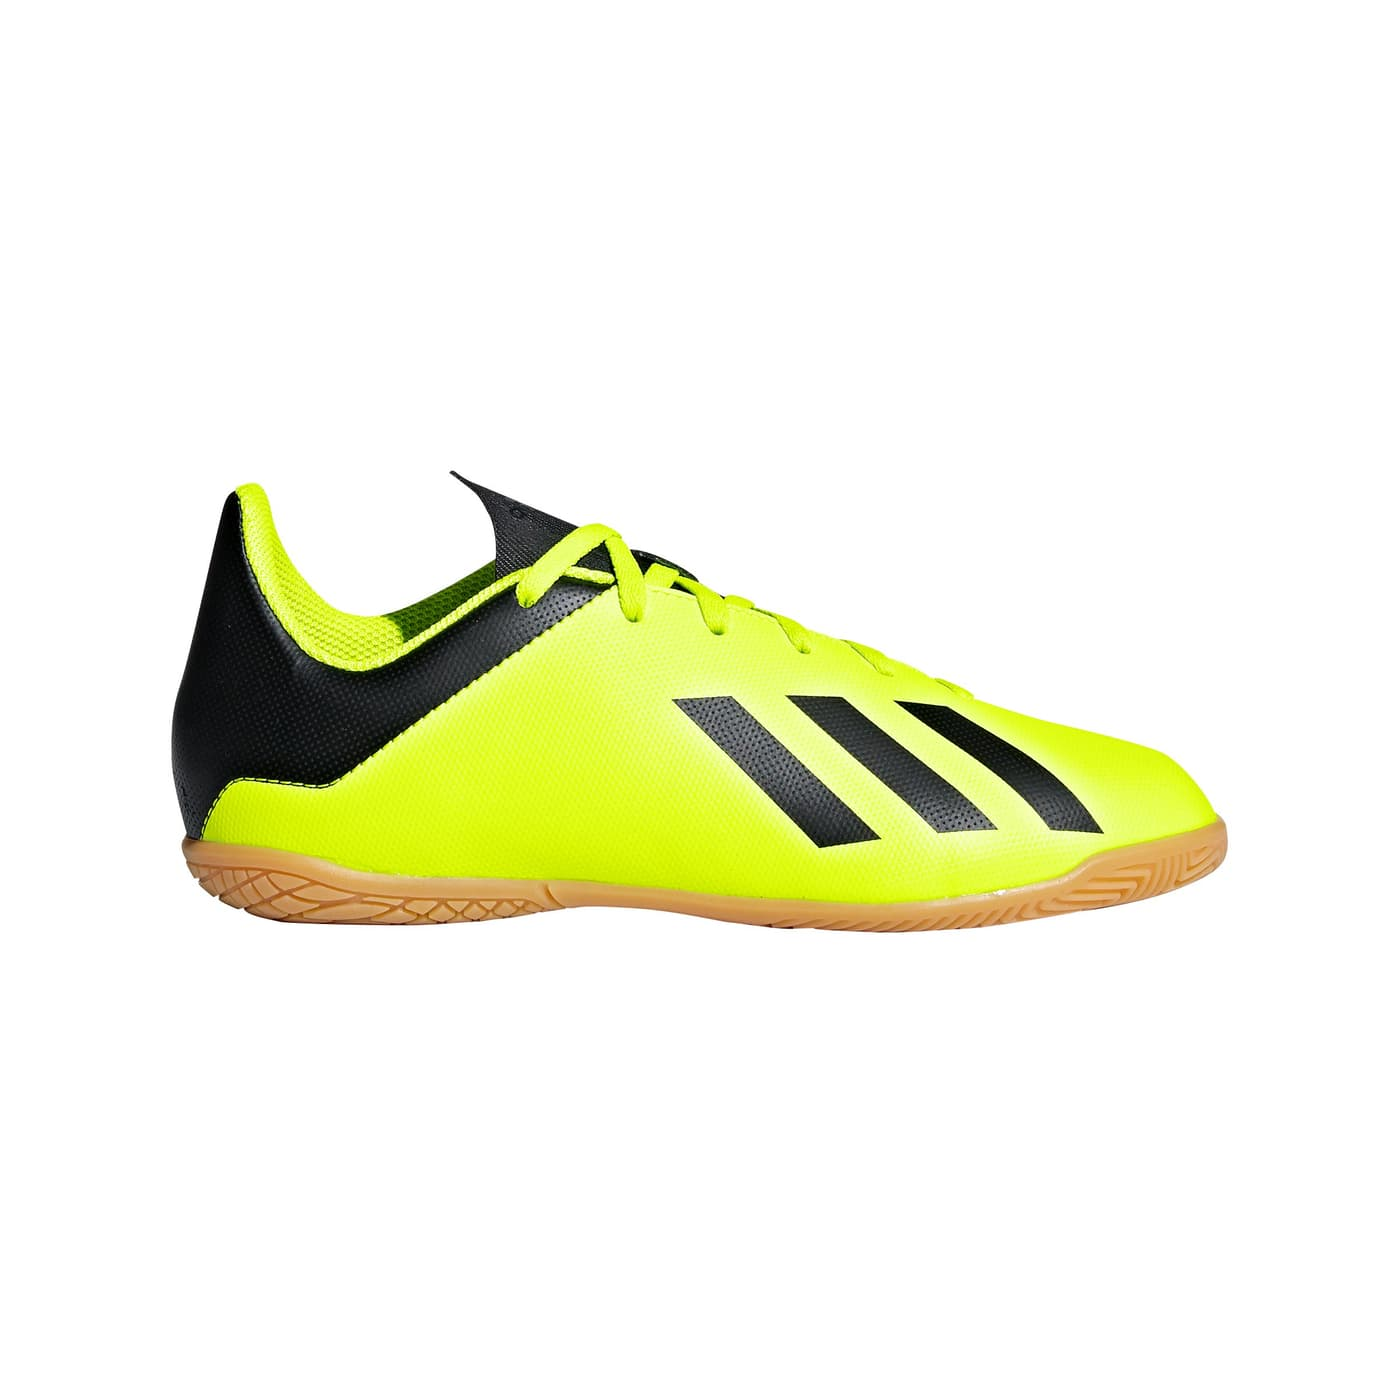 new product 3bed8 ec40c Adidas X Tango 18.4 IN Chaussures de football pour enfant ...